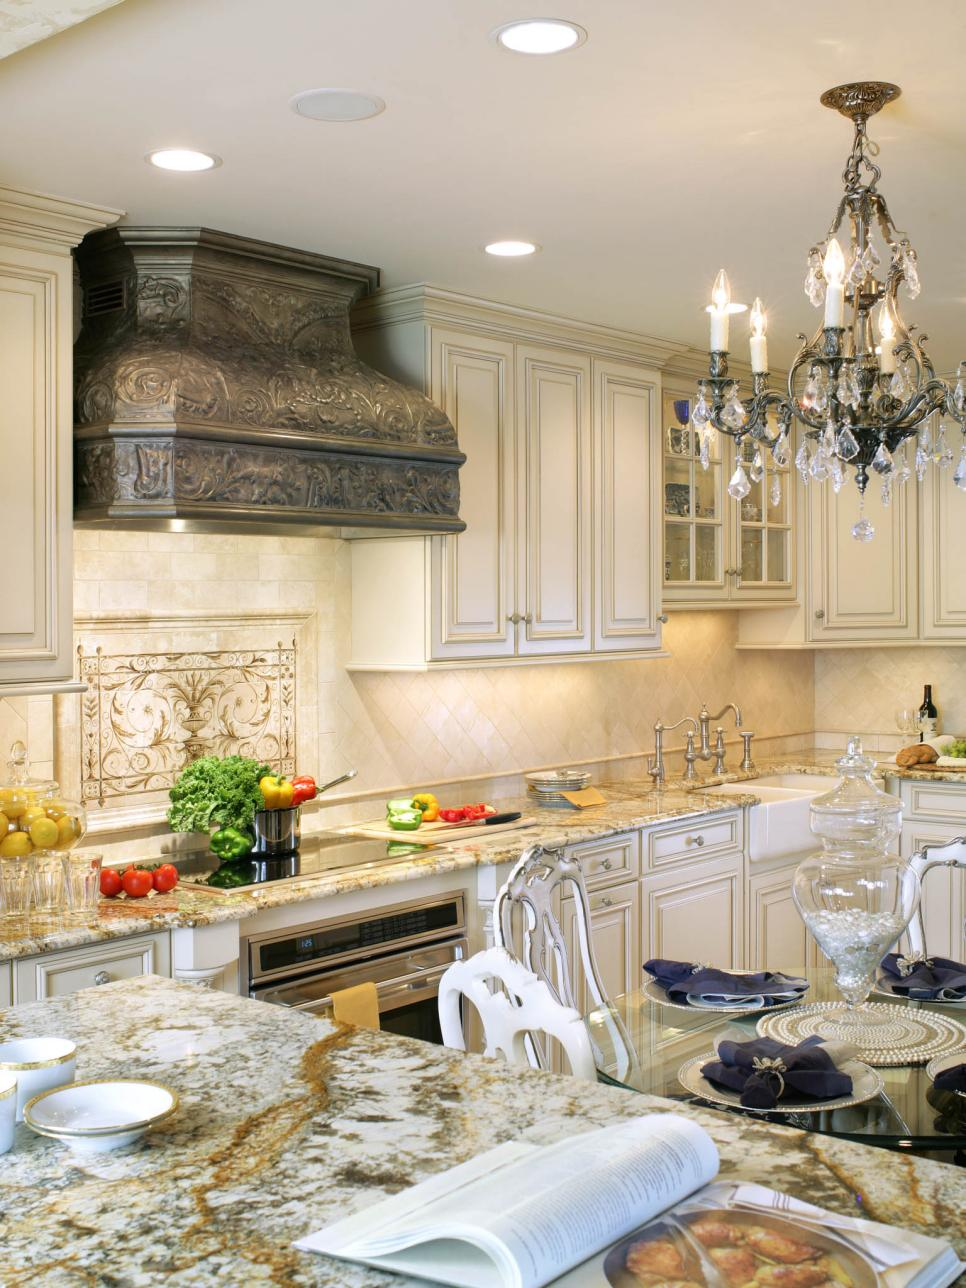 Kitchen Styles 2014 pictures of the year's best kitchens: nkba kitchen design